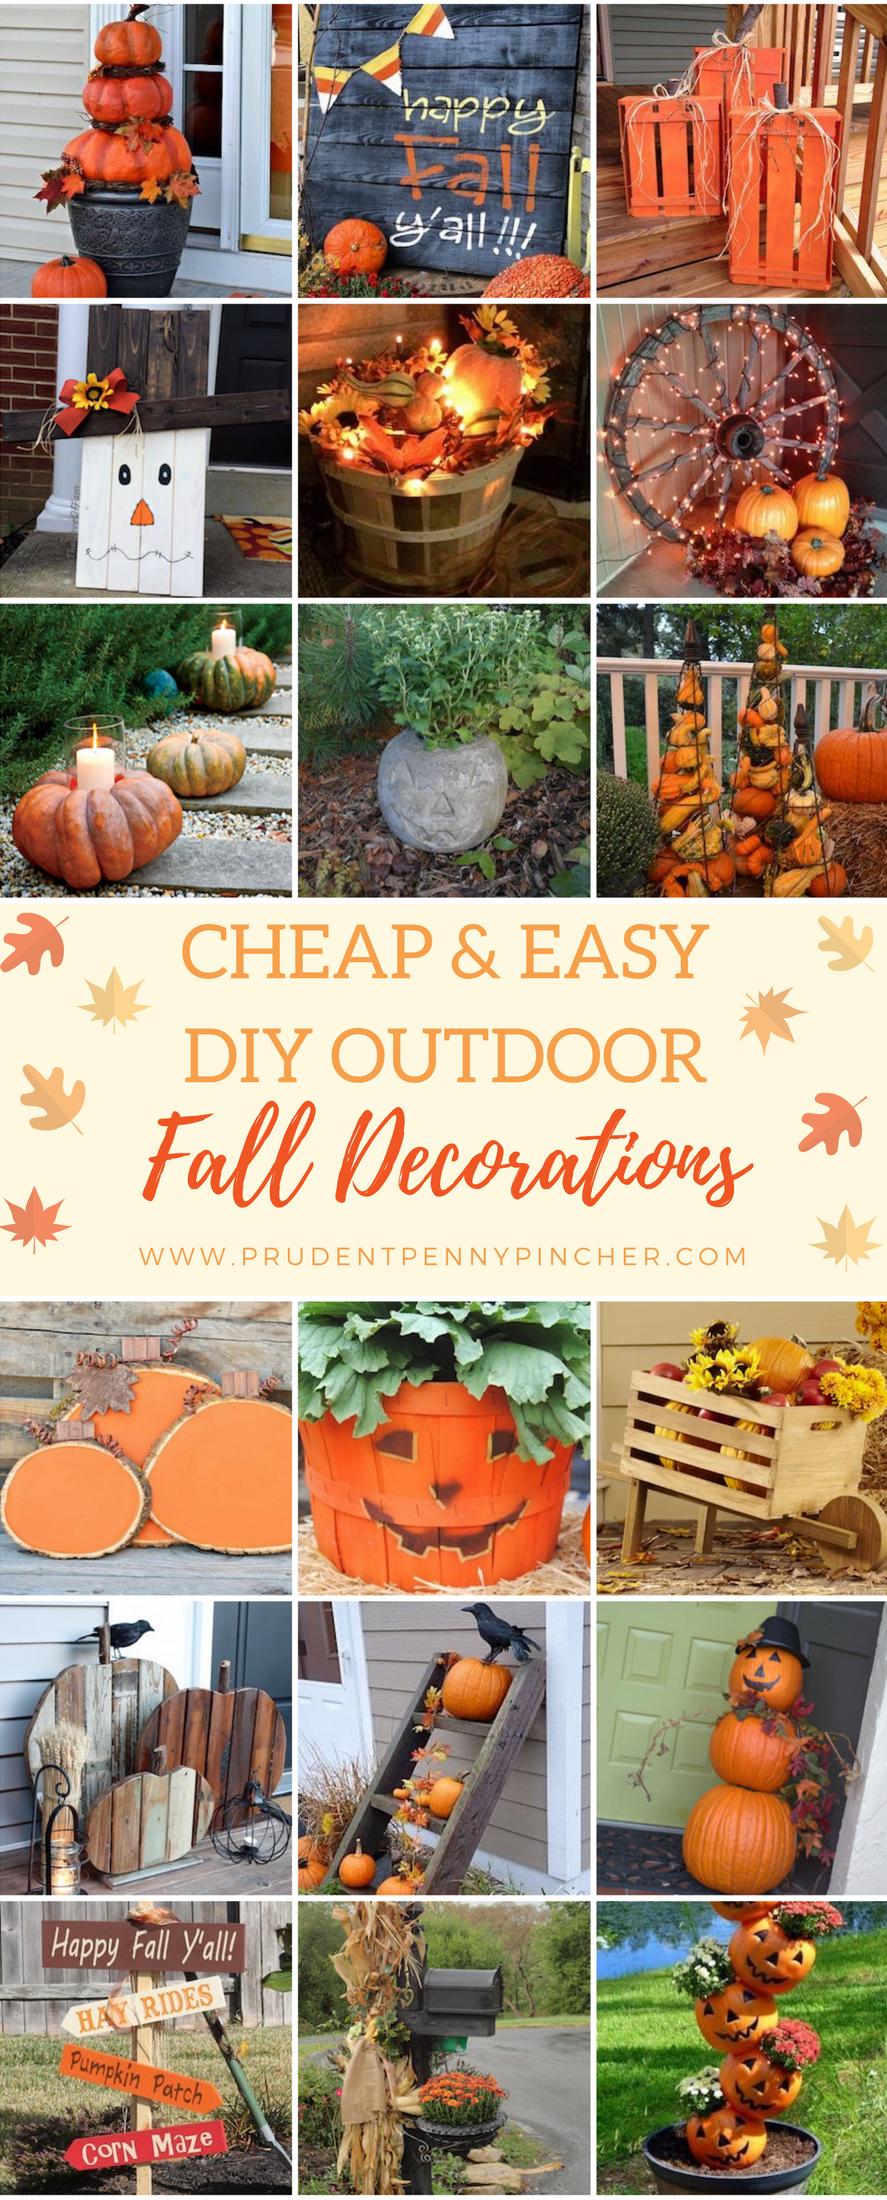 Diy Fall Decor Ideas  Outdoors Fall Decor  YouTube